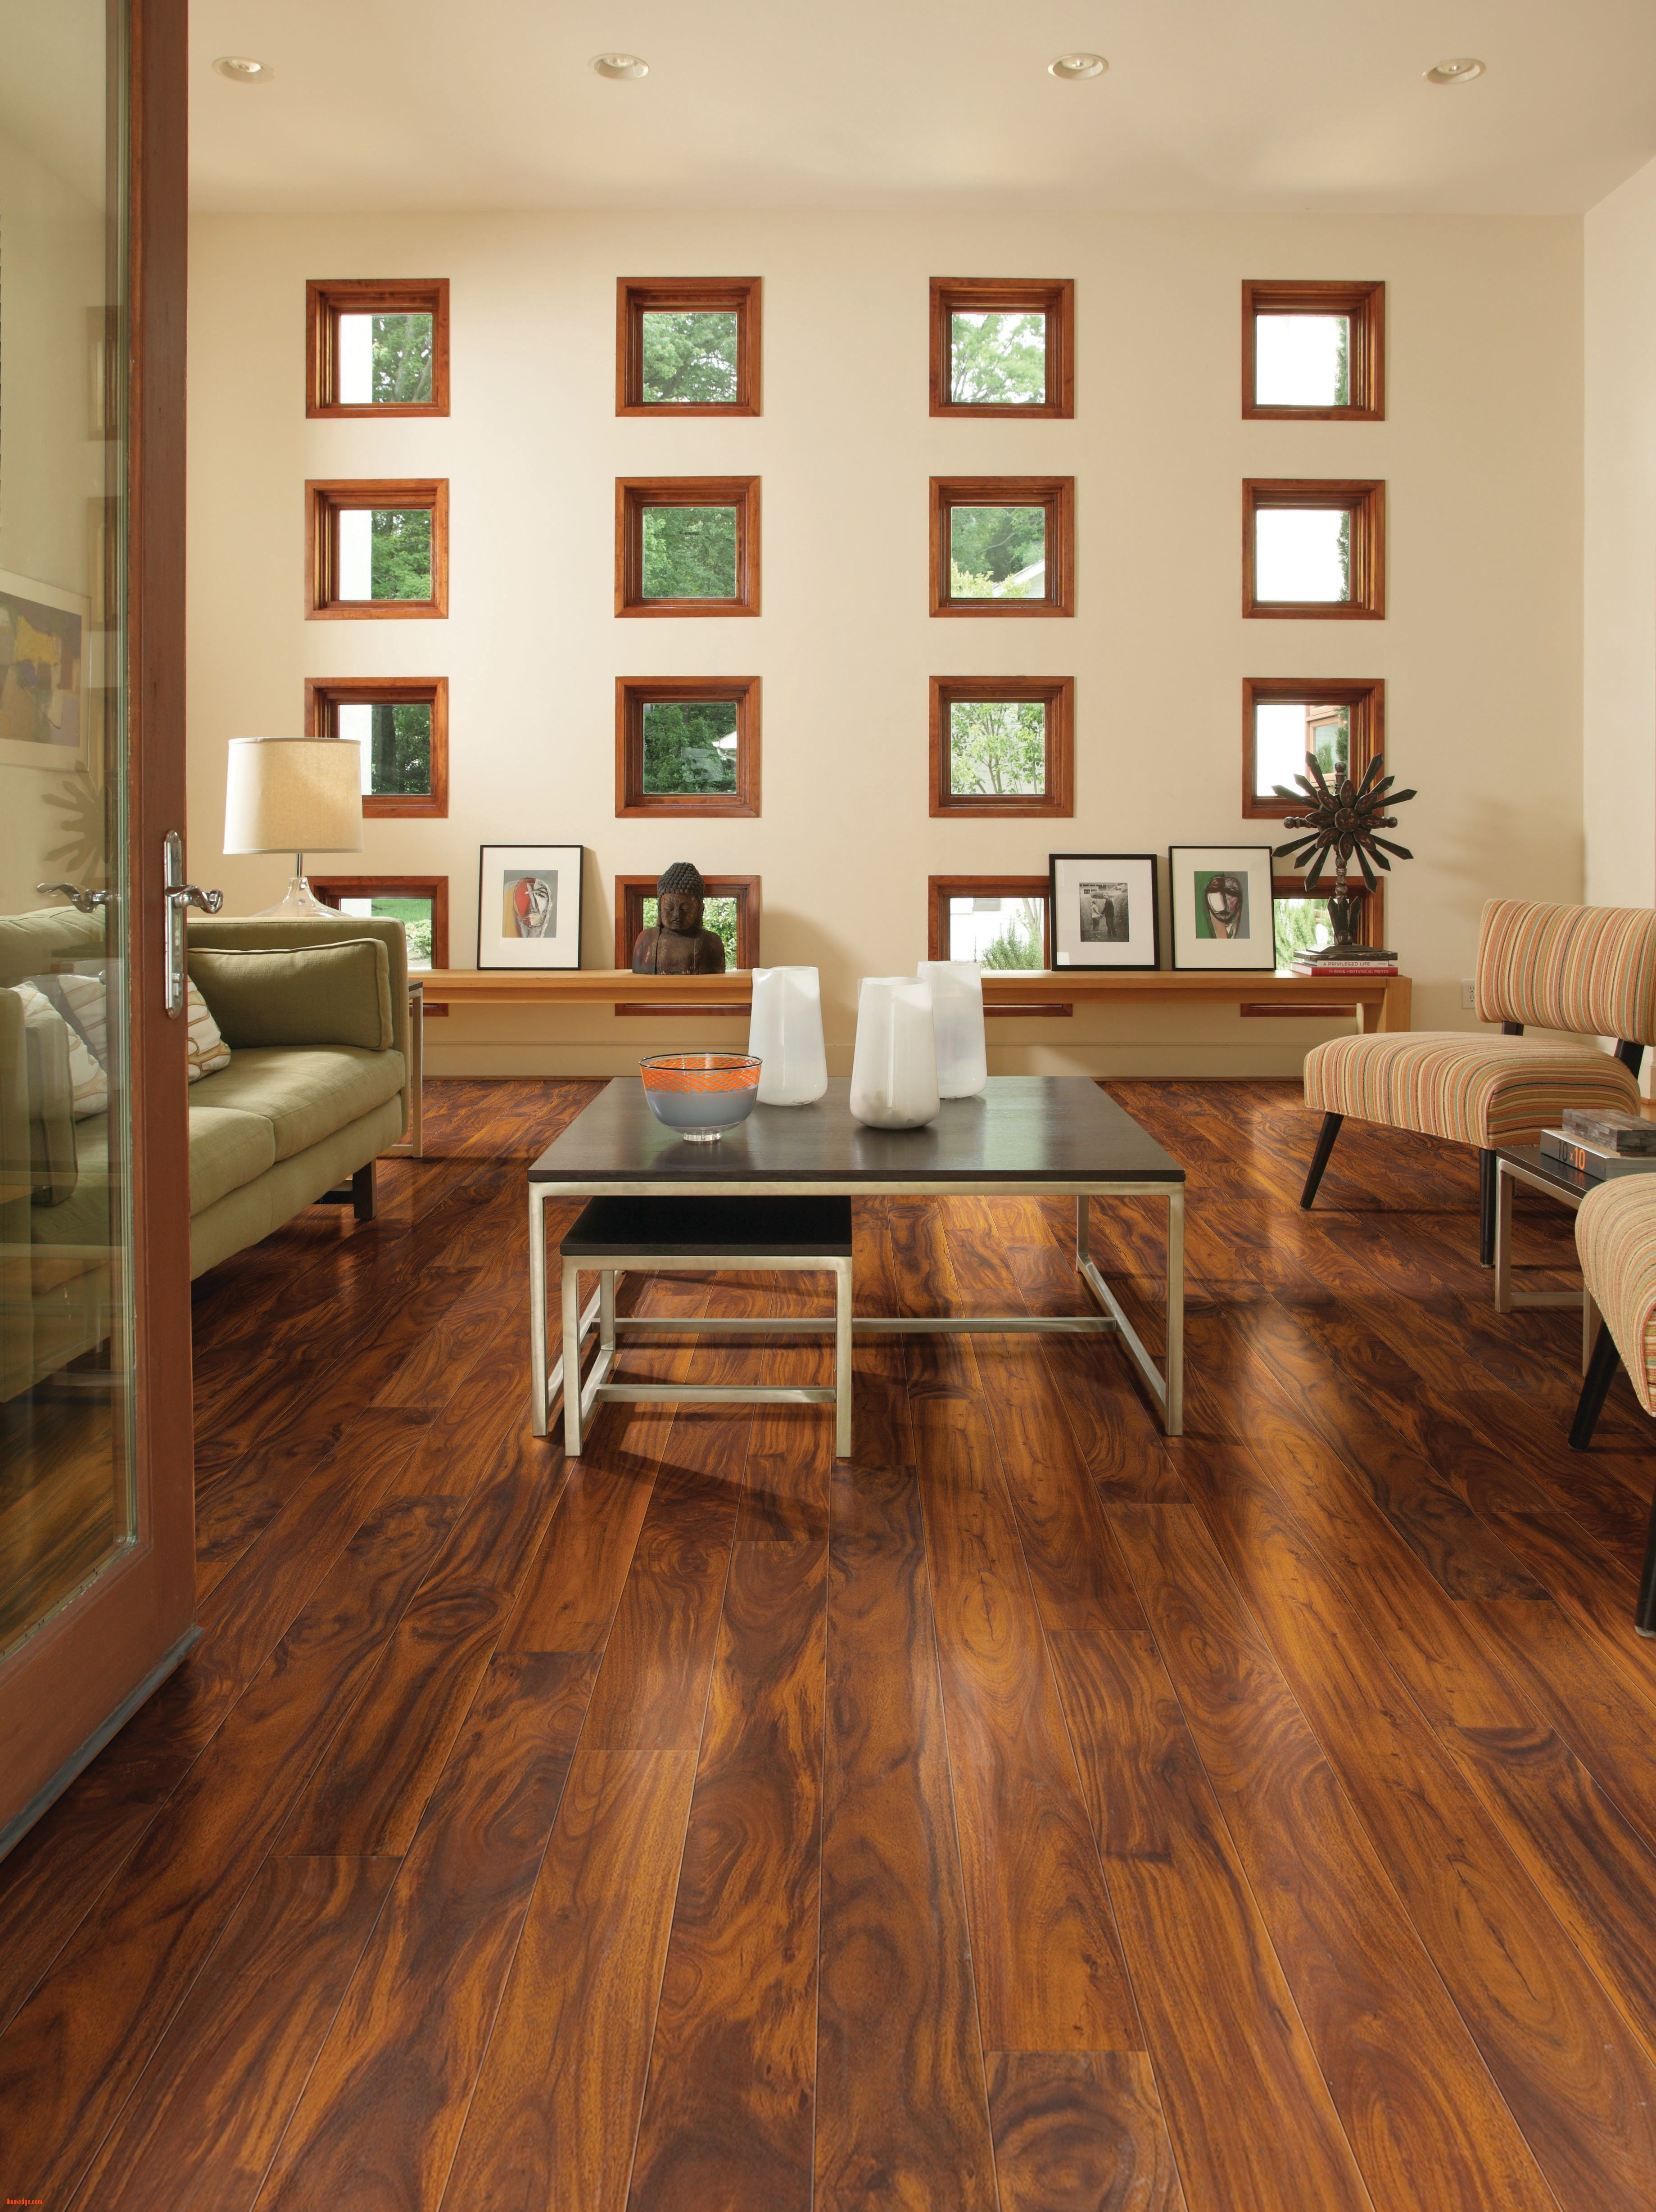 Cool Lovely Acacia Wood Flooring Laminate Hickory Ihomedge